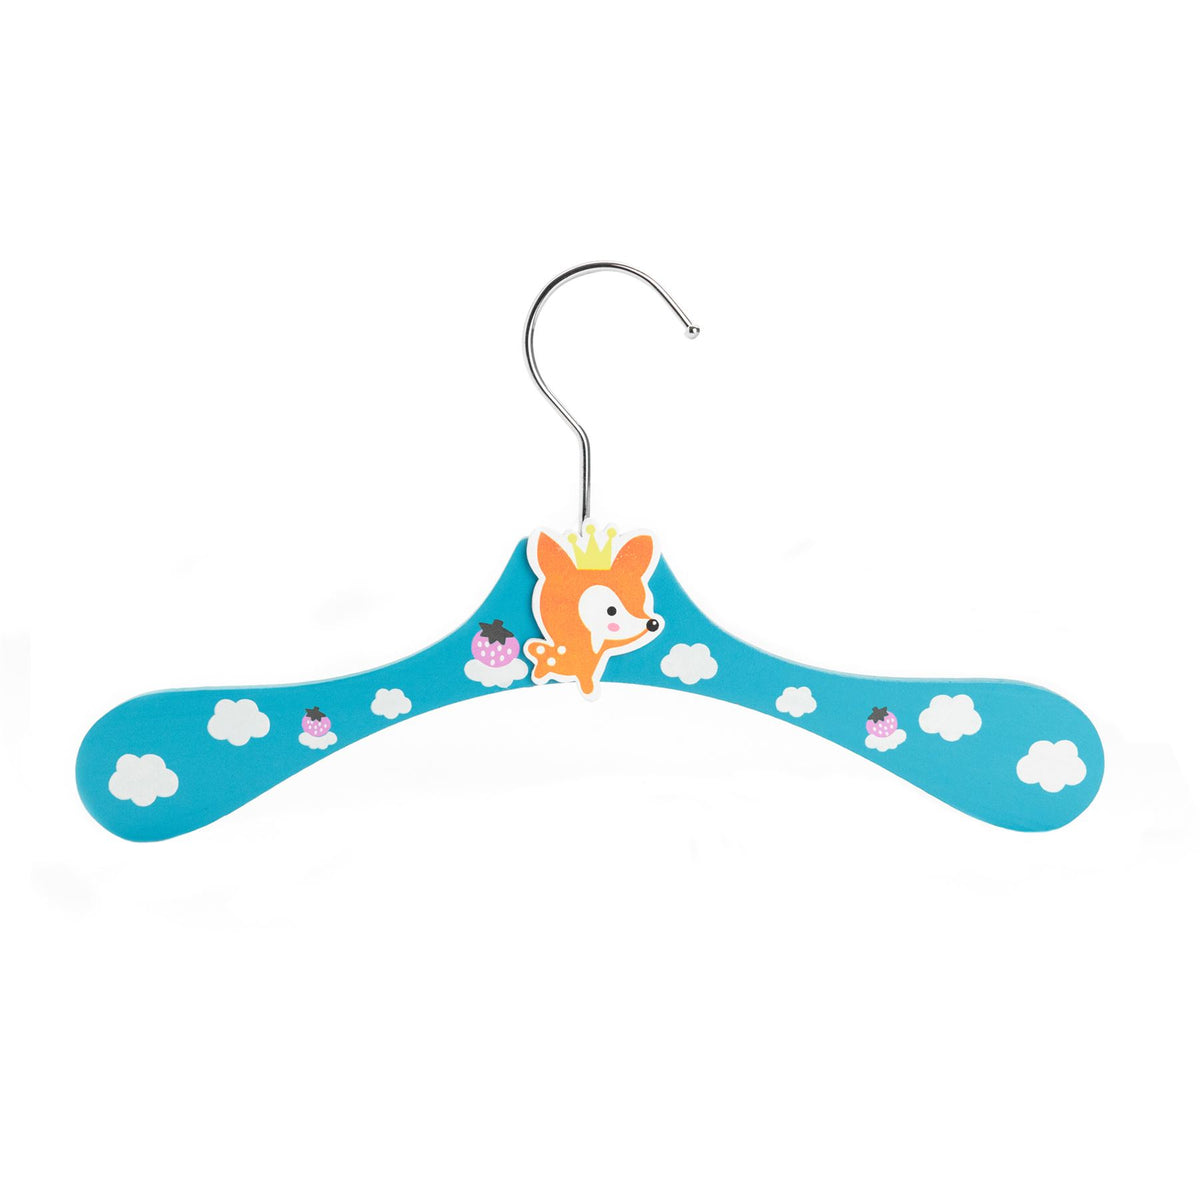 Harbour Housewares Children's Clothes Hanger - Fox